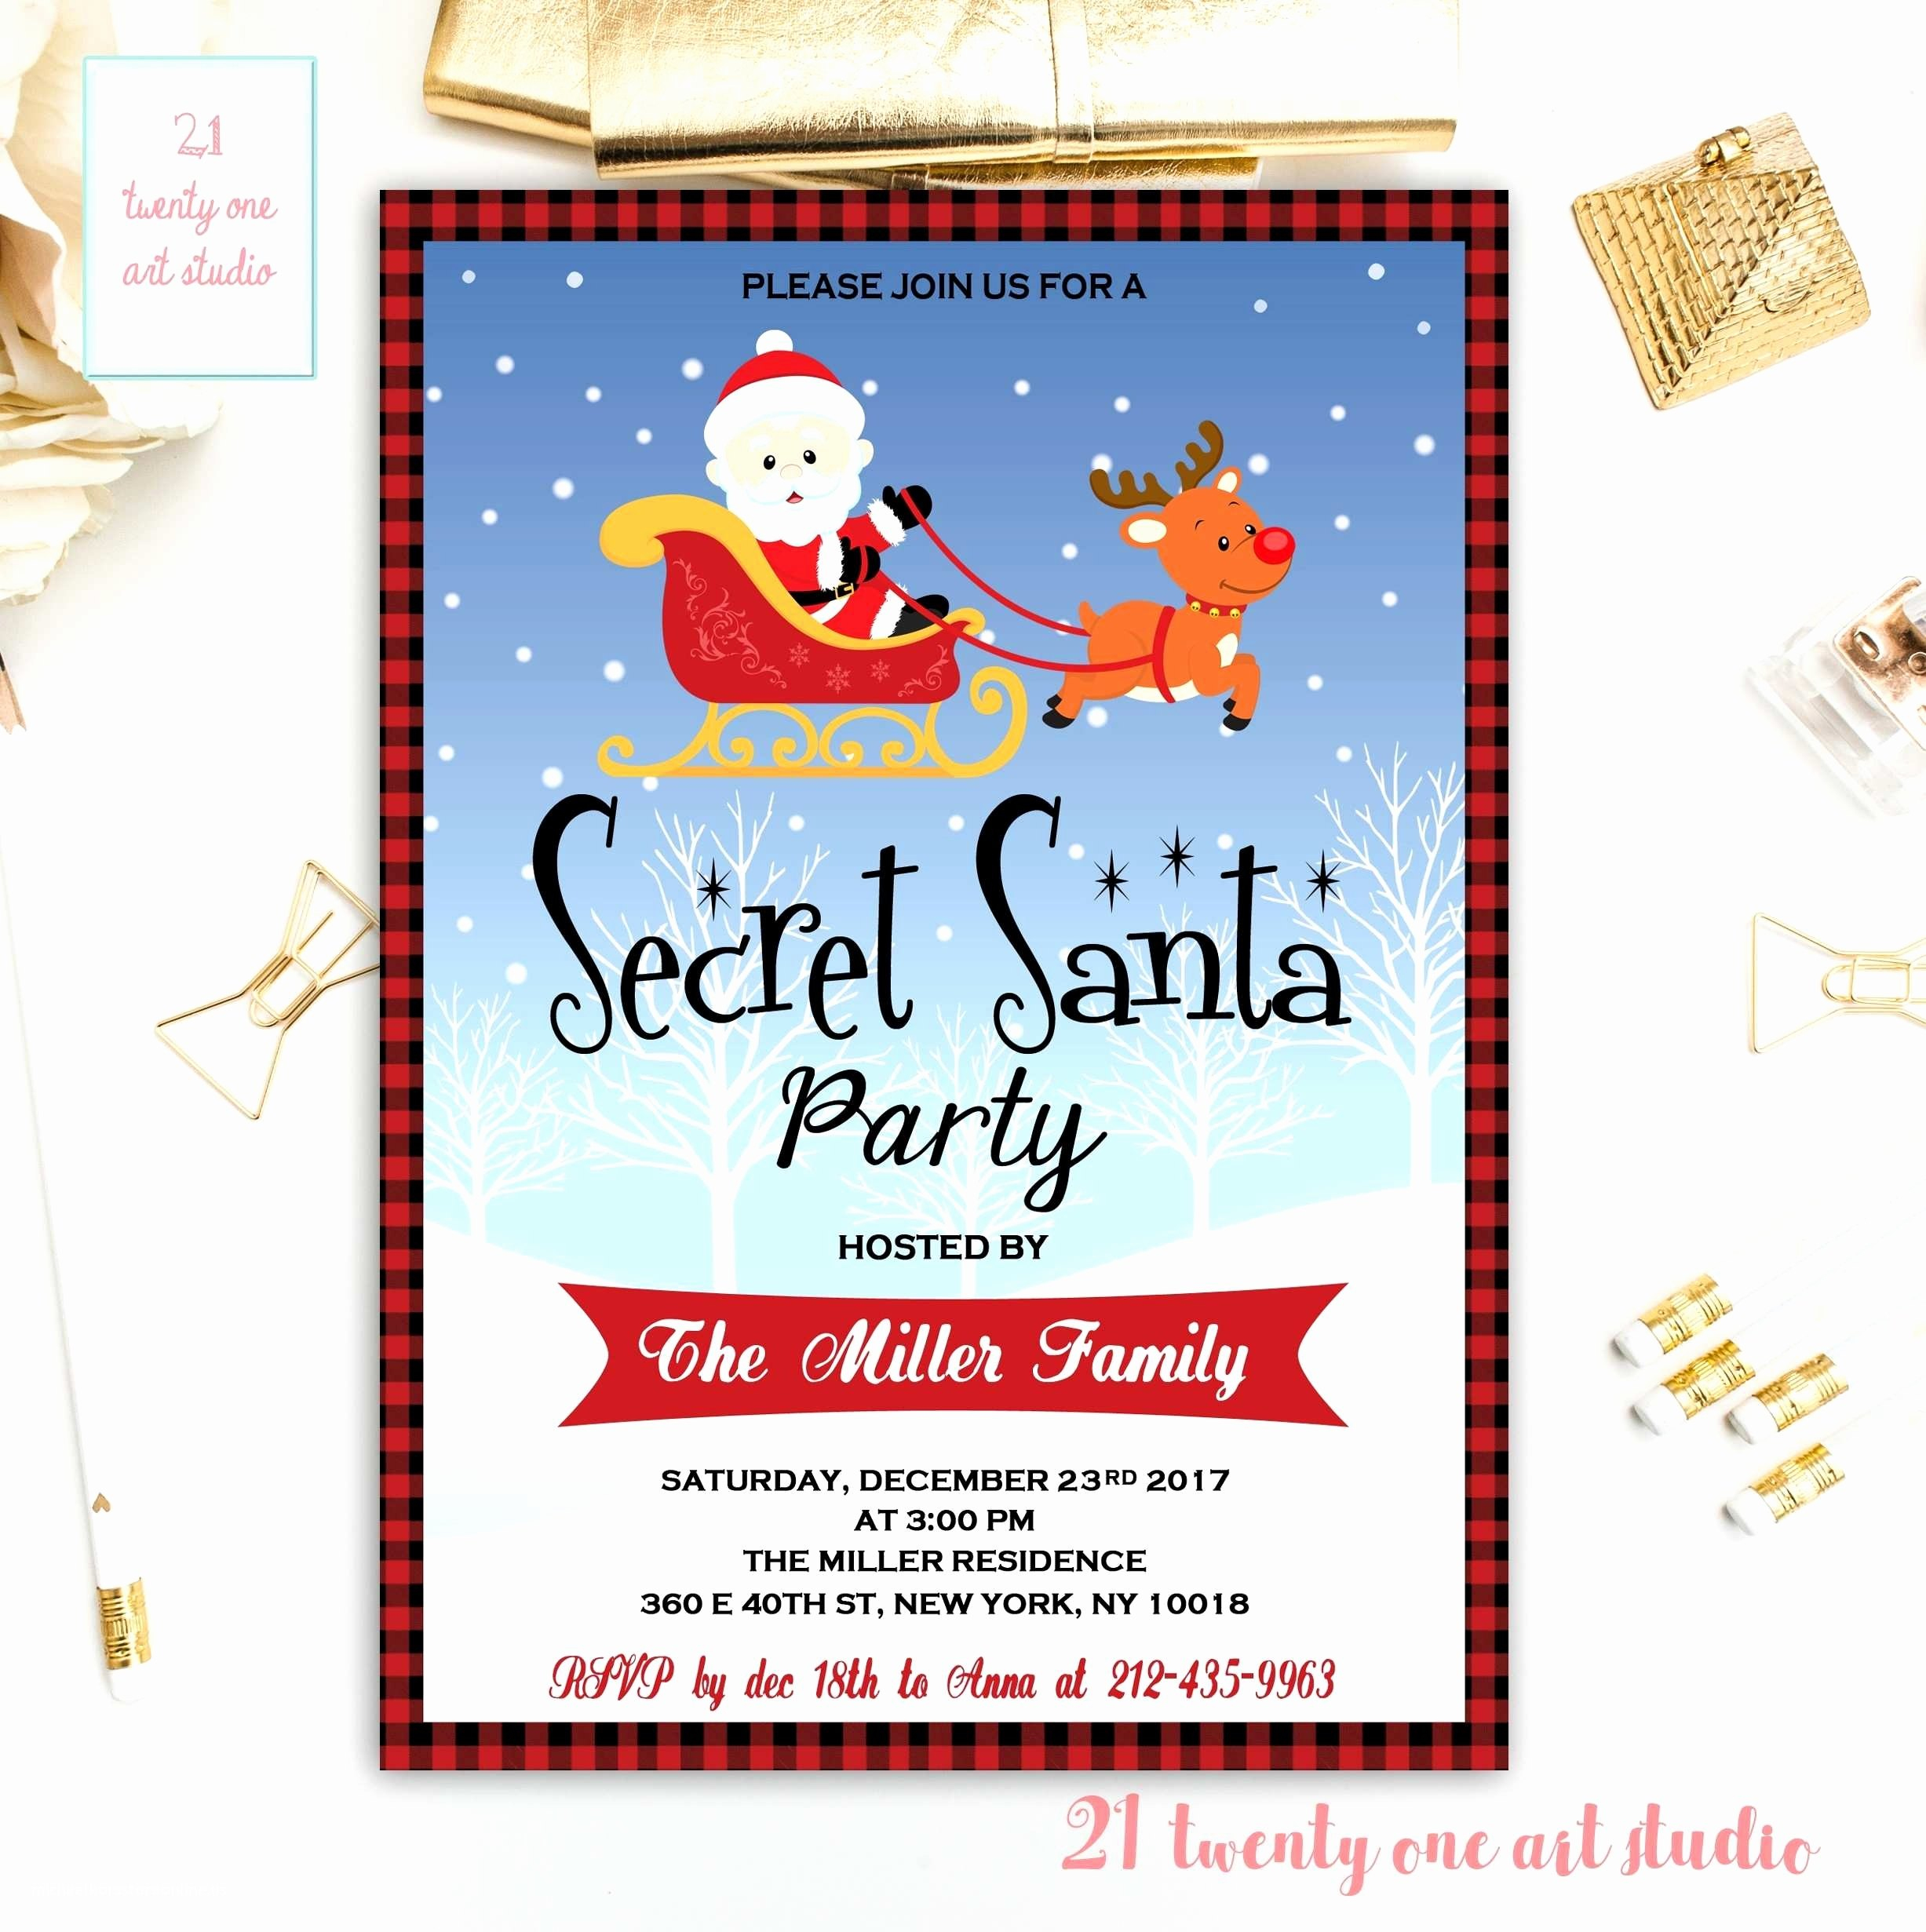 Lovely Print Christmas Cards Online | Birthday Card | Greeting Card - Free Online Christmas Photo Card Maker Printable